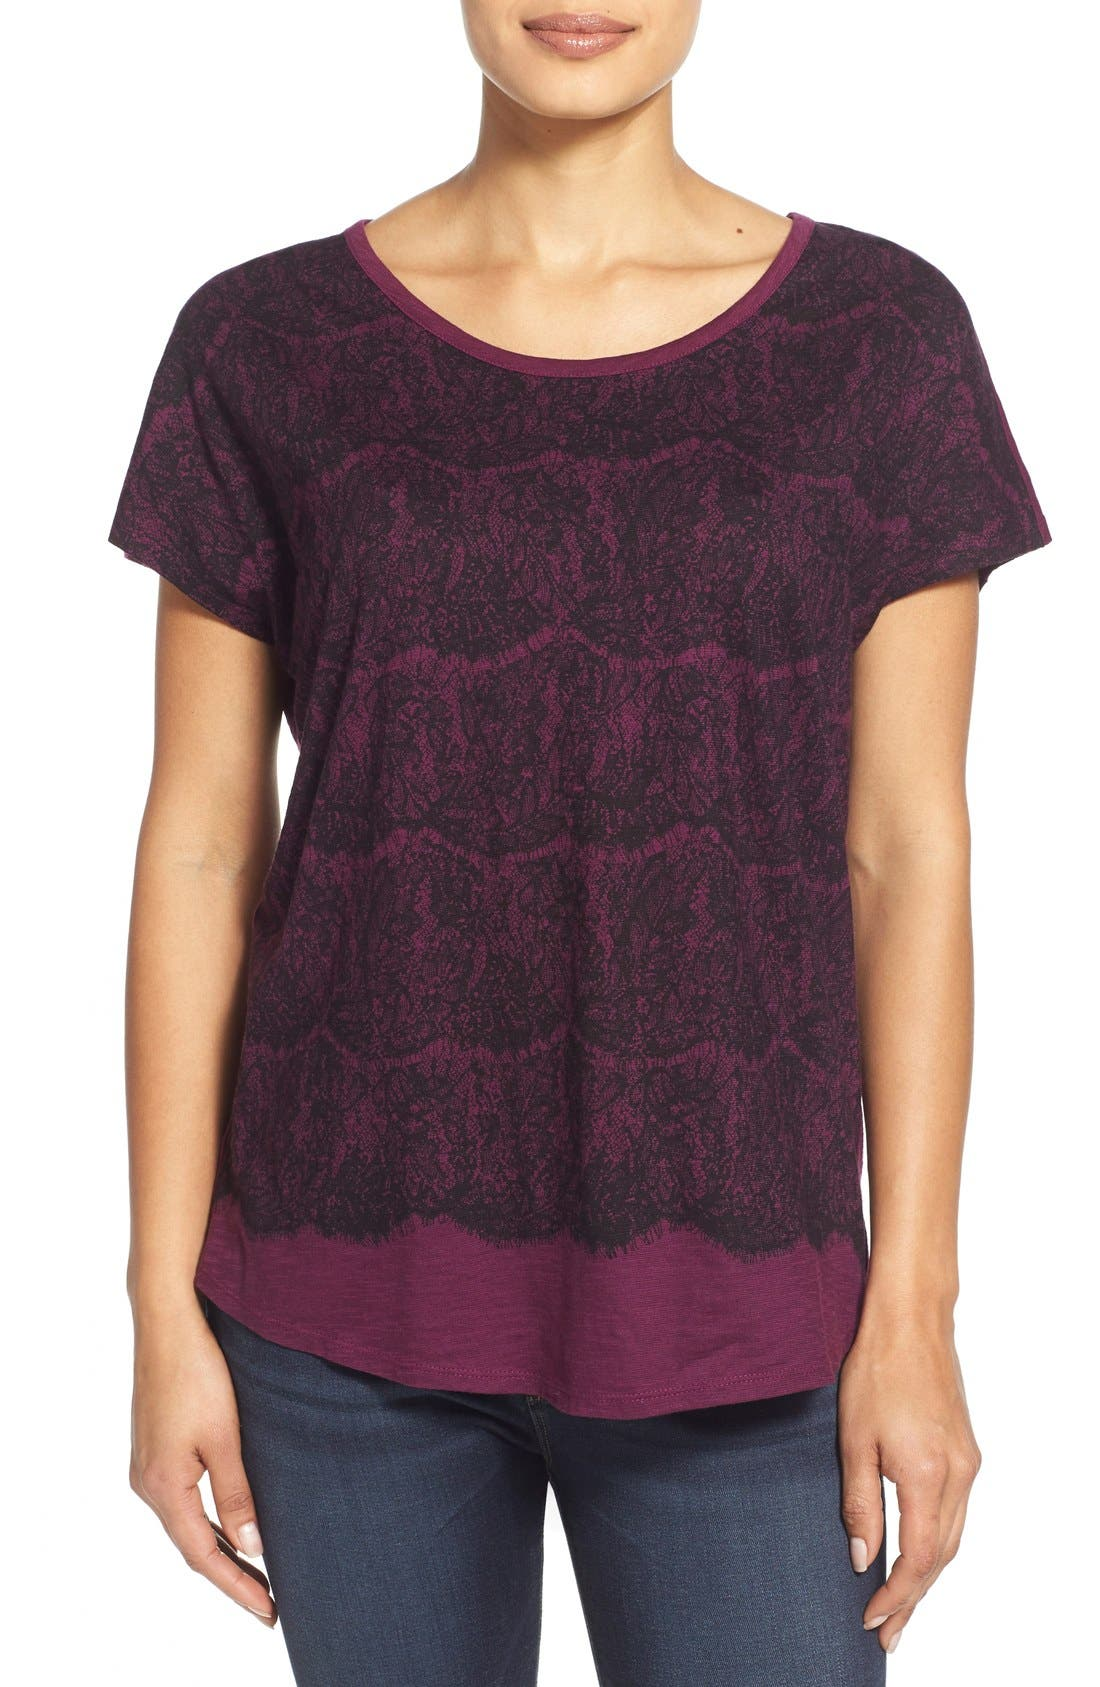 Main Image - Two by Vince Camuto Lace Graphic Cotton Tee